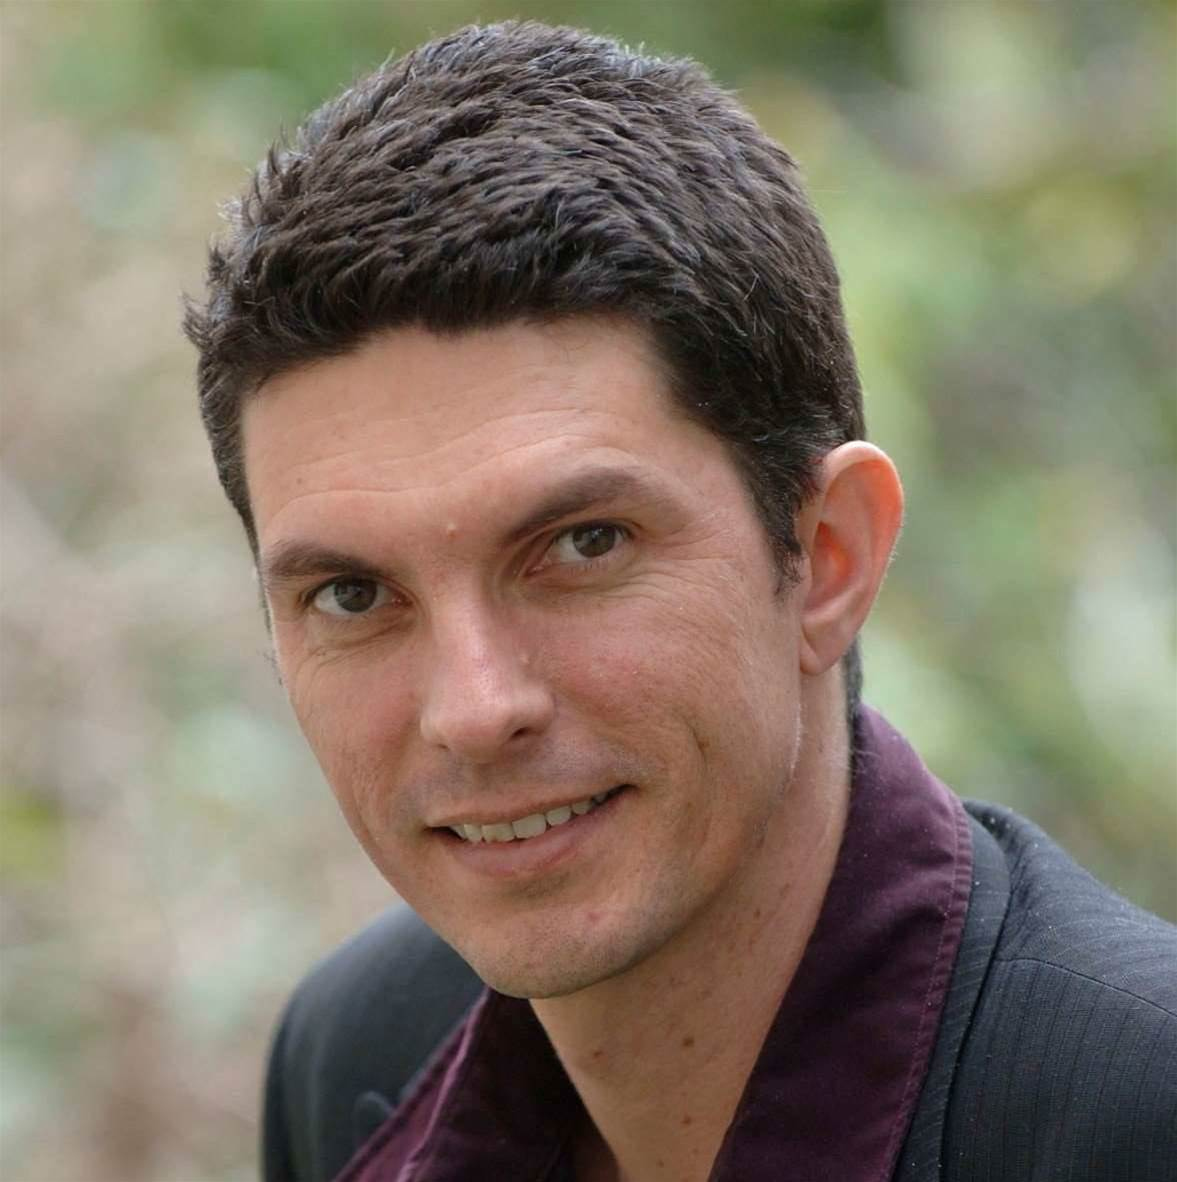 Ludlam seeks judicial oversight of telco surveillance